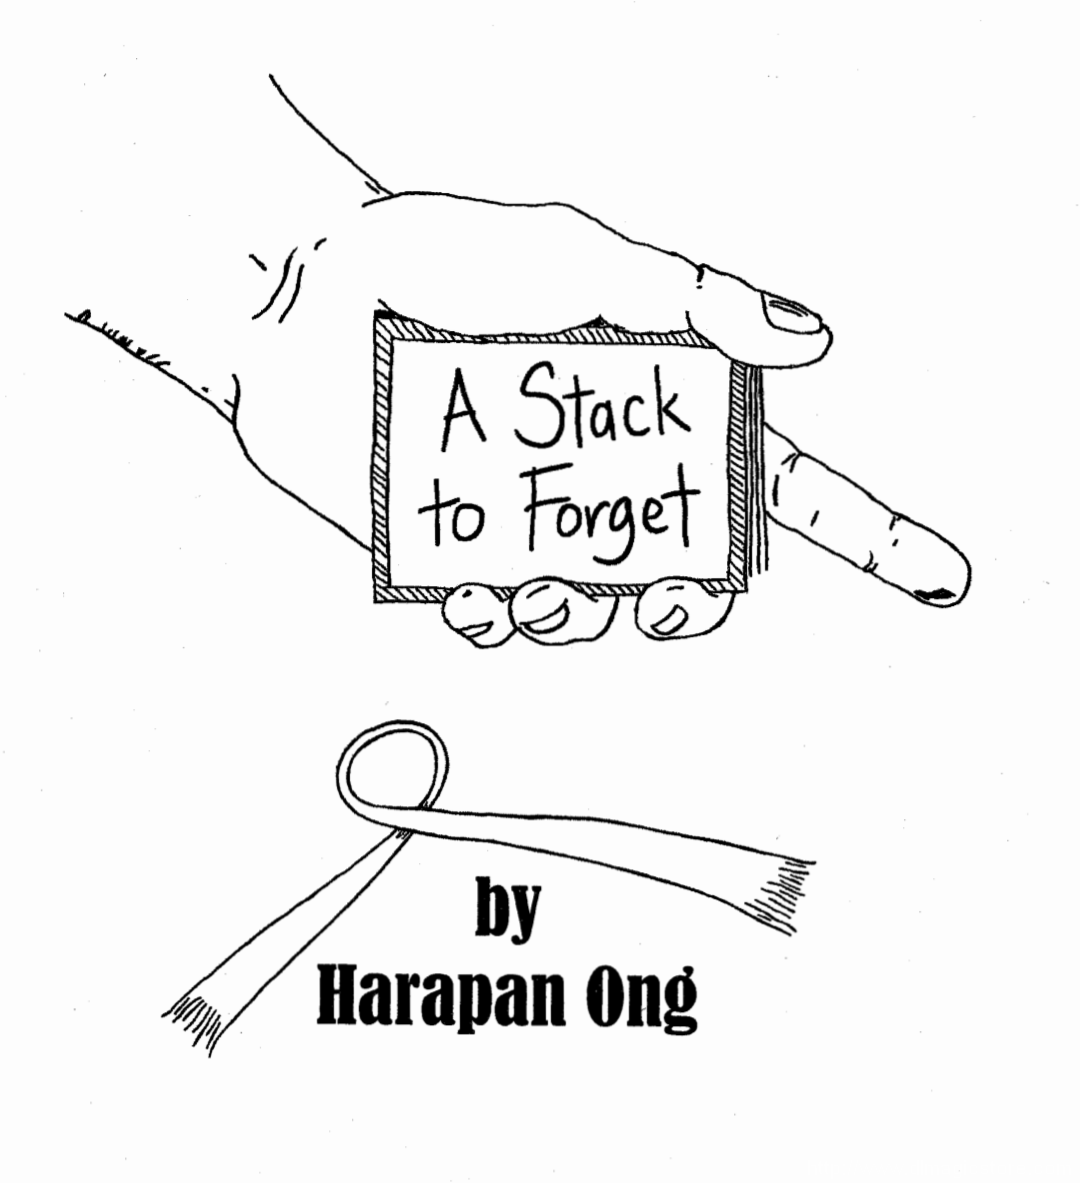 A Stack to forget by Harapan Ong